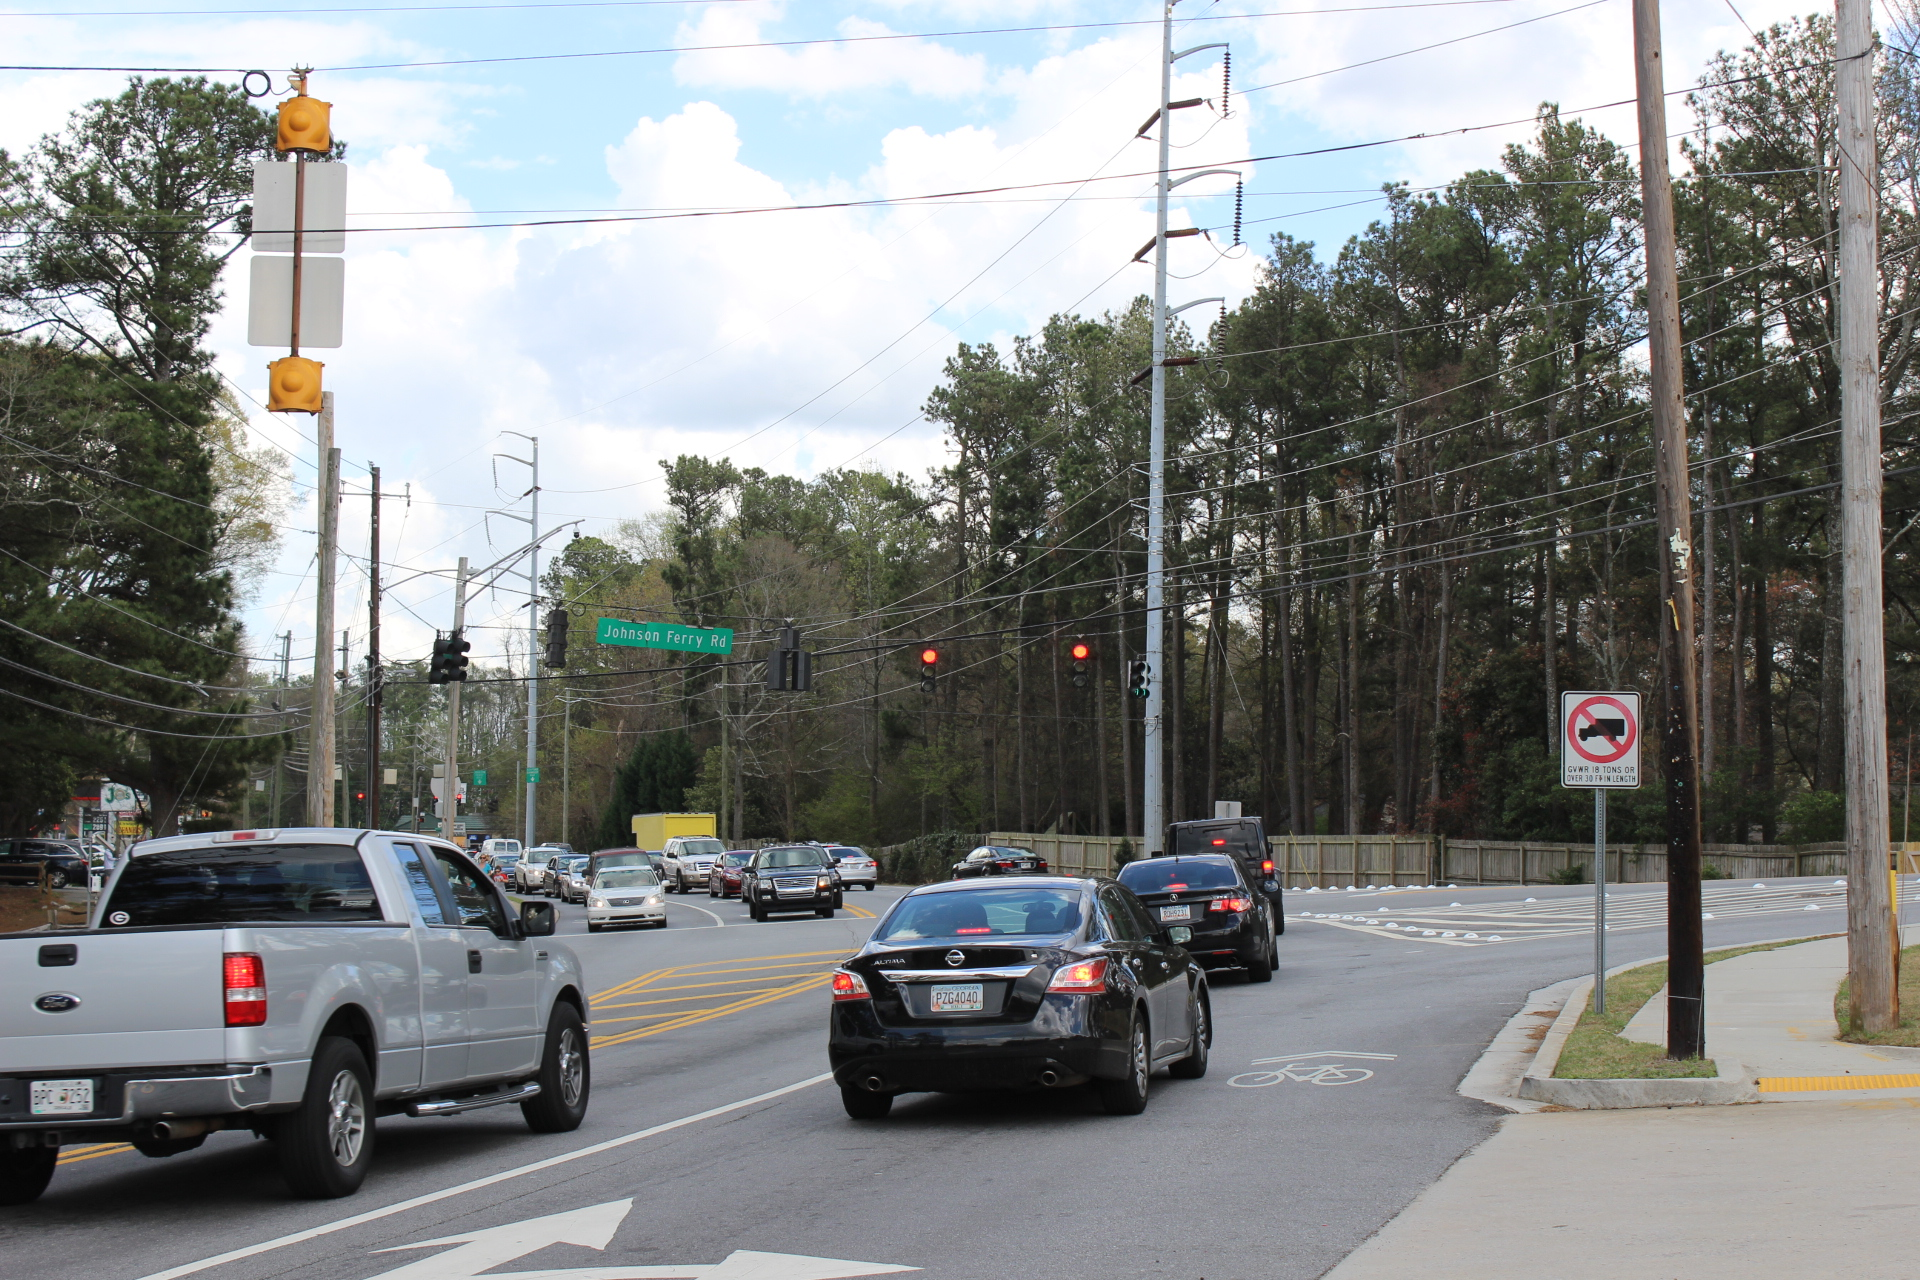 Walkers, drivers react to Brookhaven intersection redesign plan